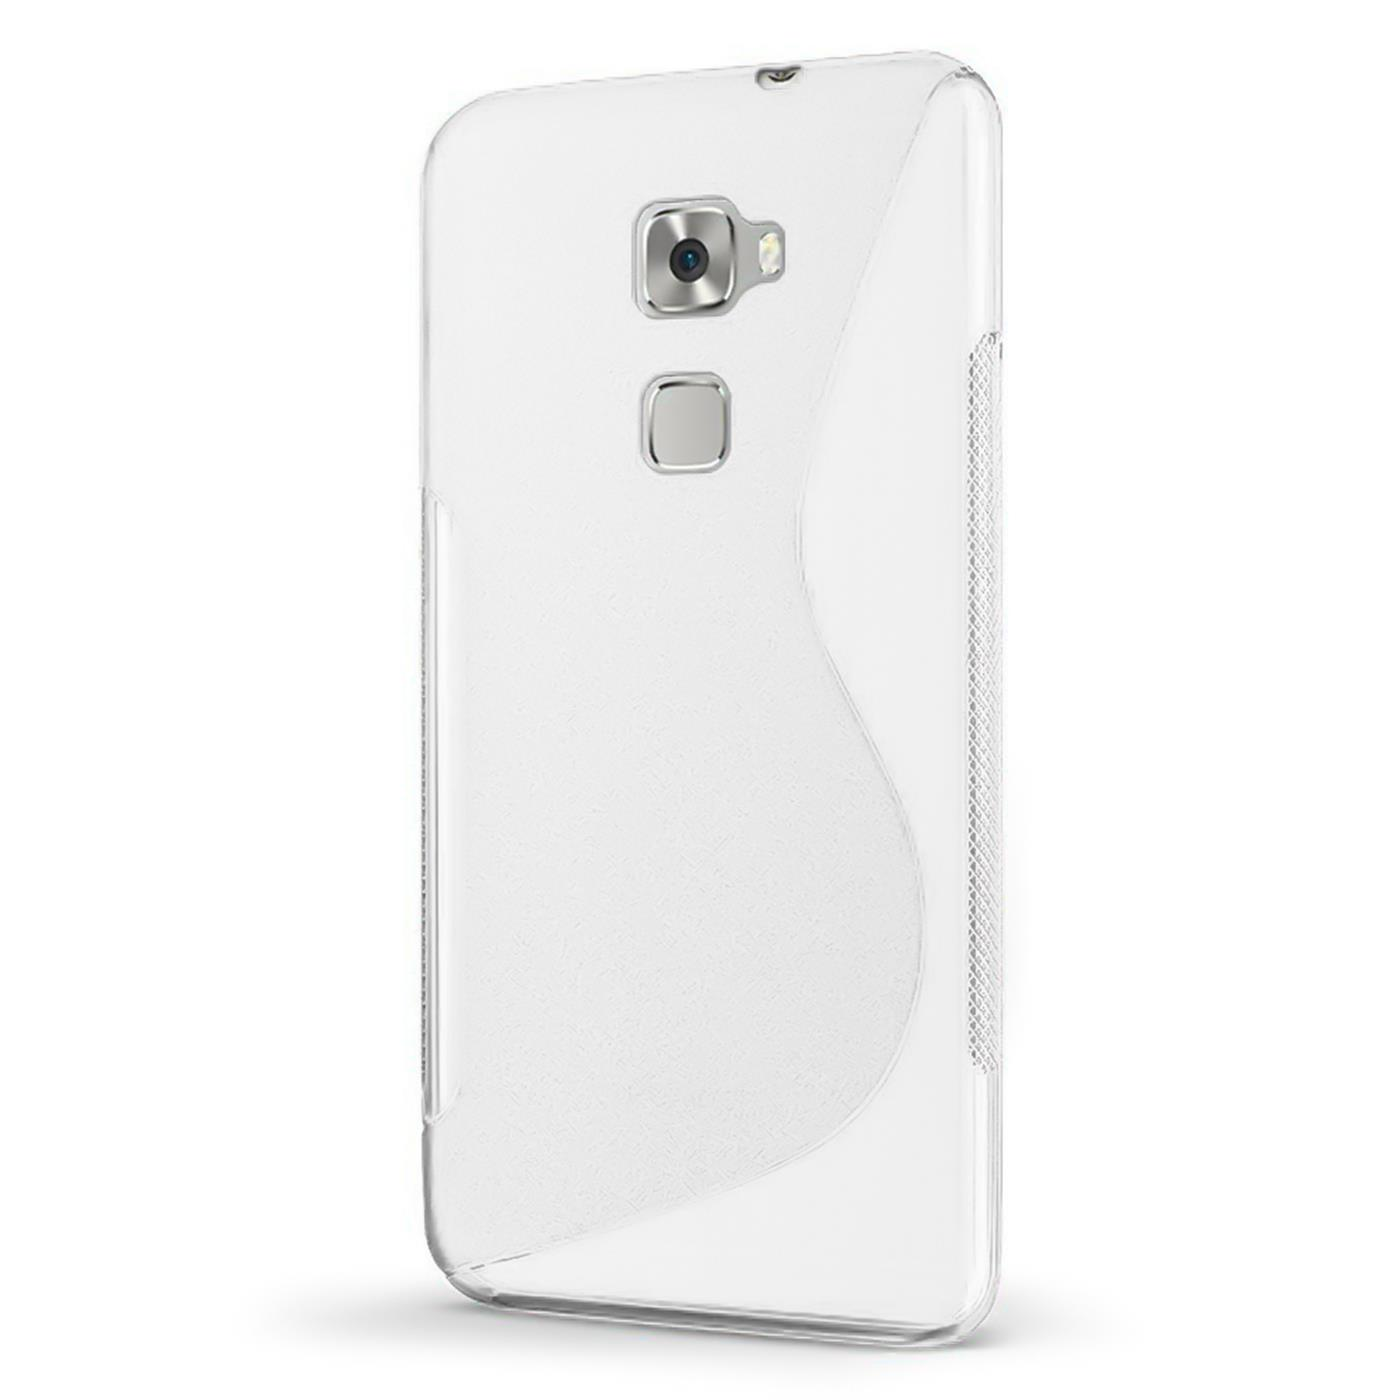 Huawei-Mate-8-Silikon-Gel-S-Line-Case-Cover-Ultra-Thin-Slim-Back-Bumper Indexbild 28